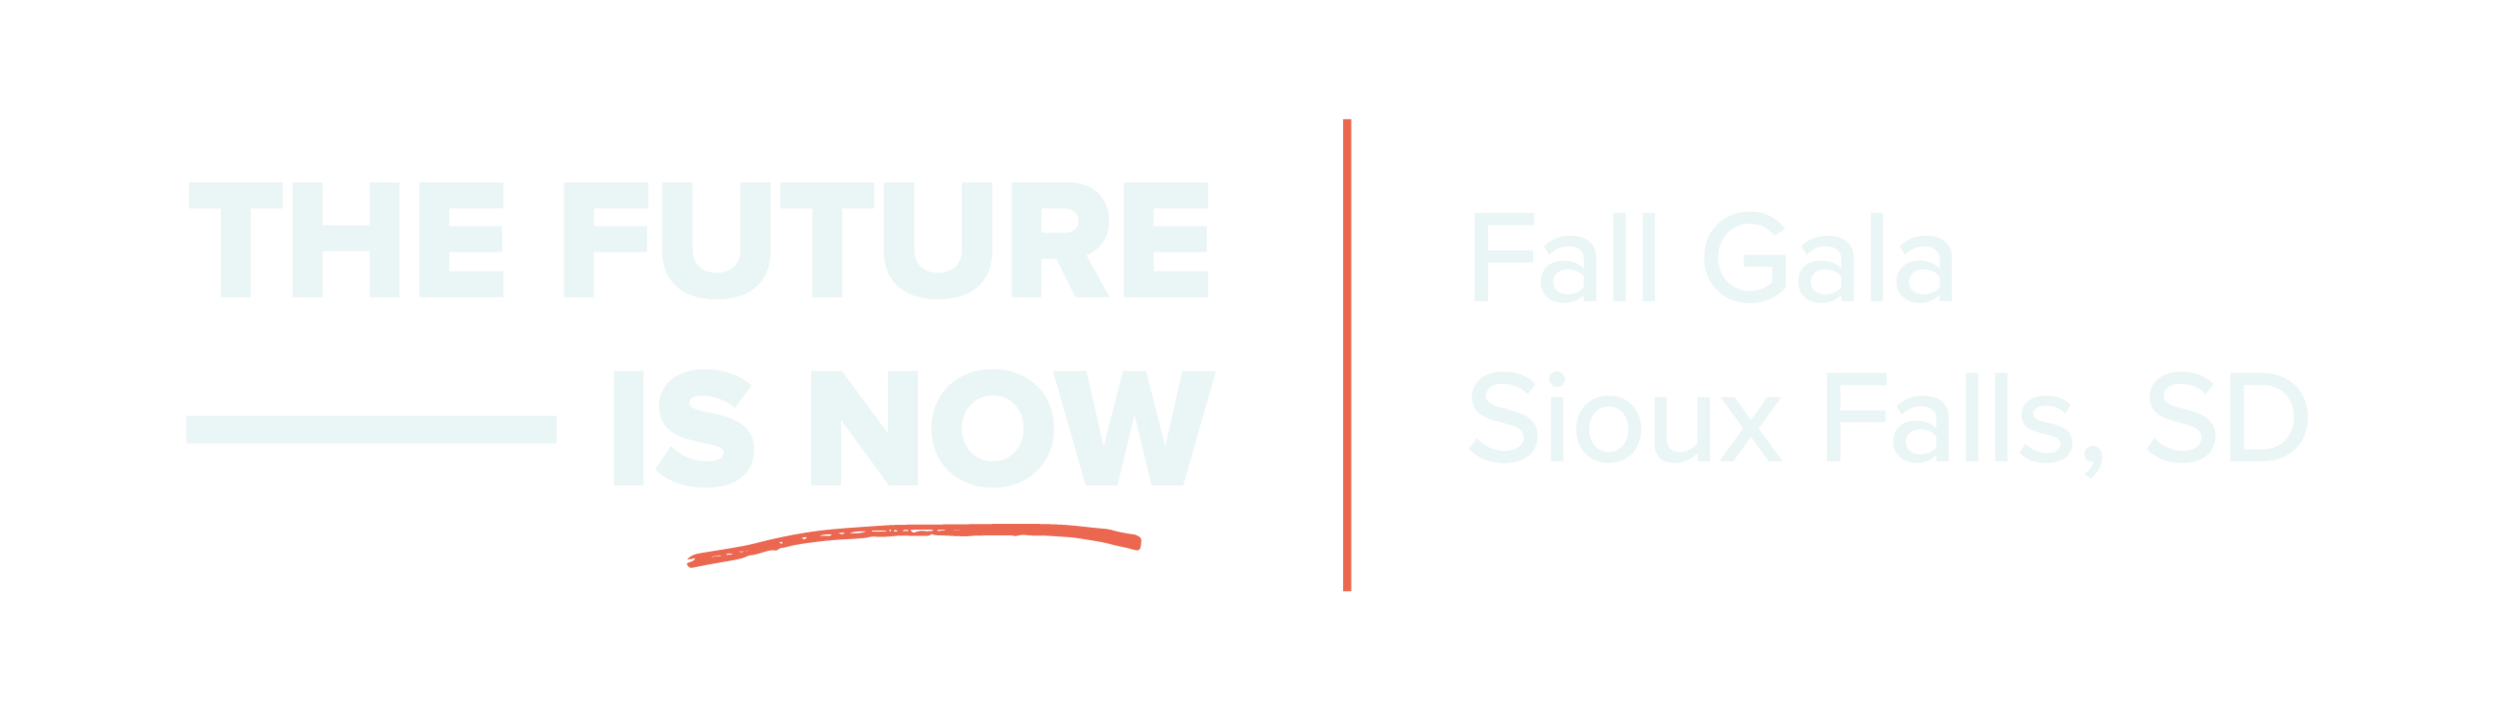 The Future is Now Logo_SD Horizontal - Dark.png